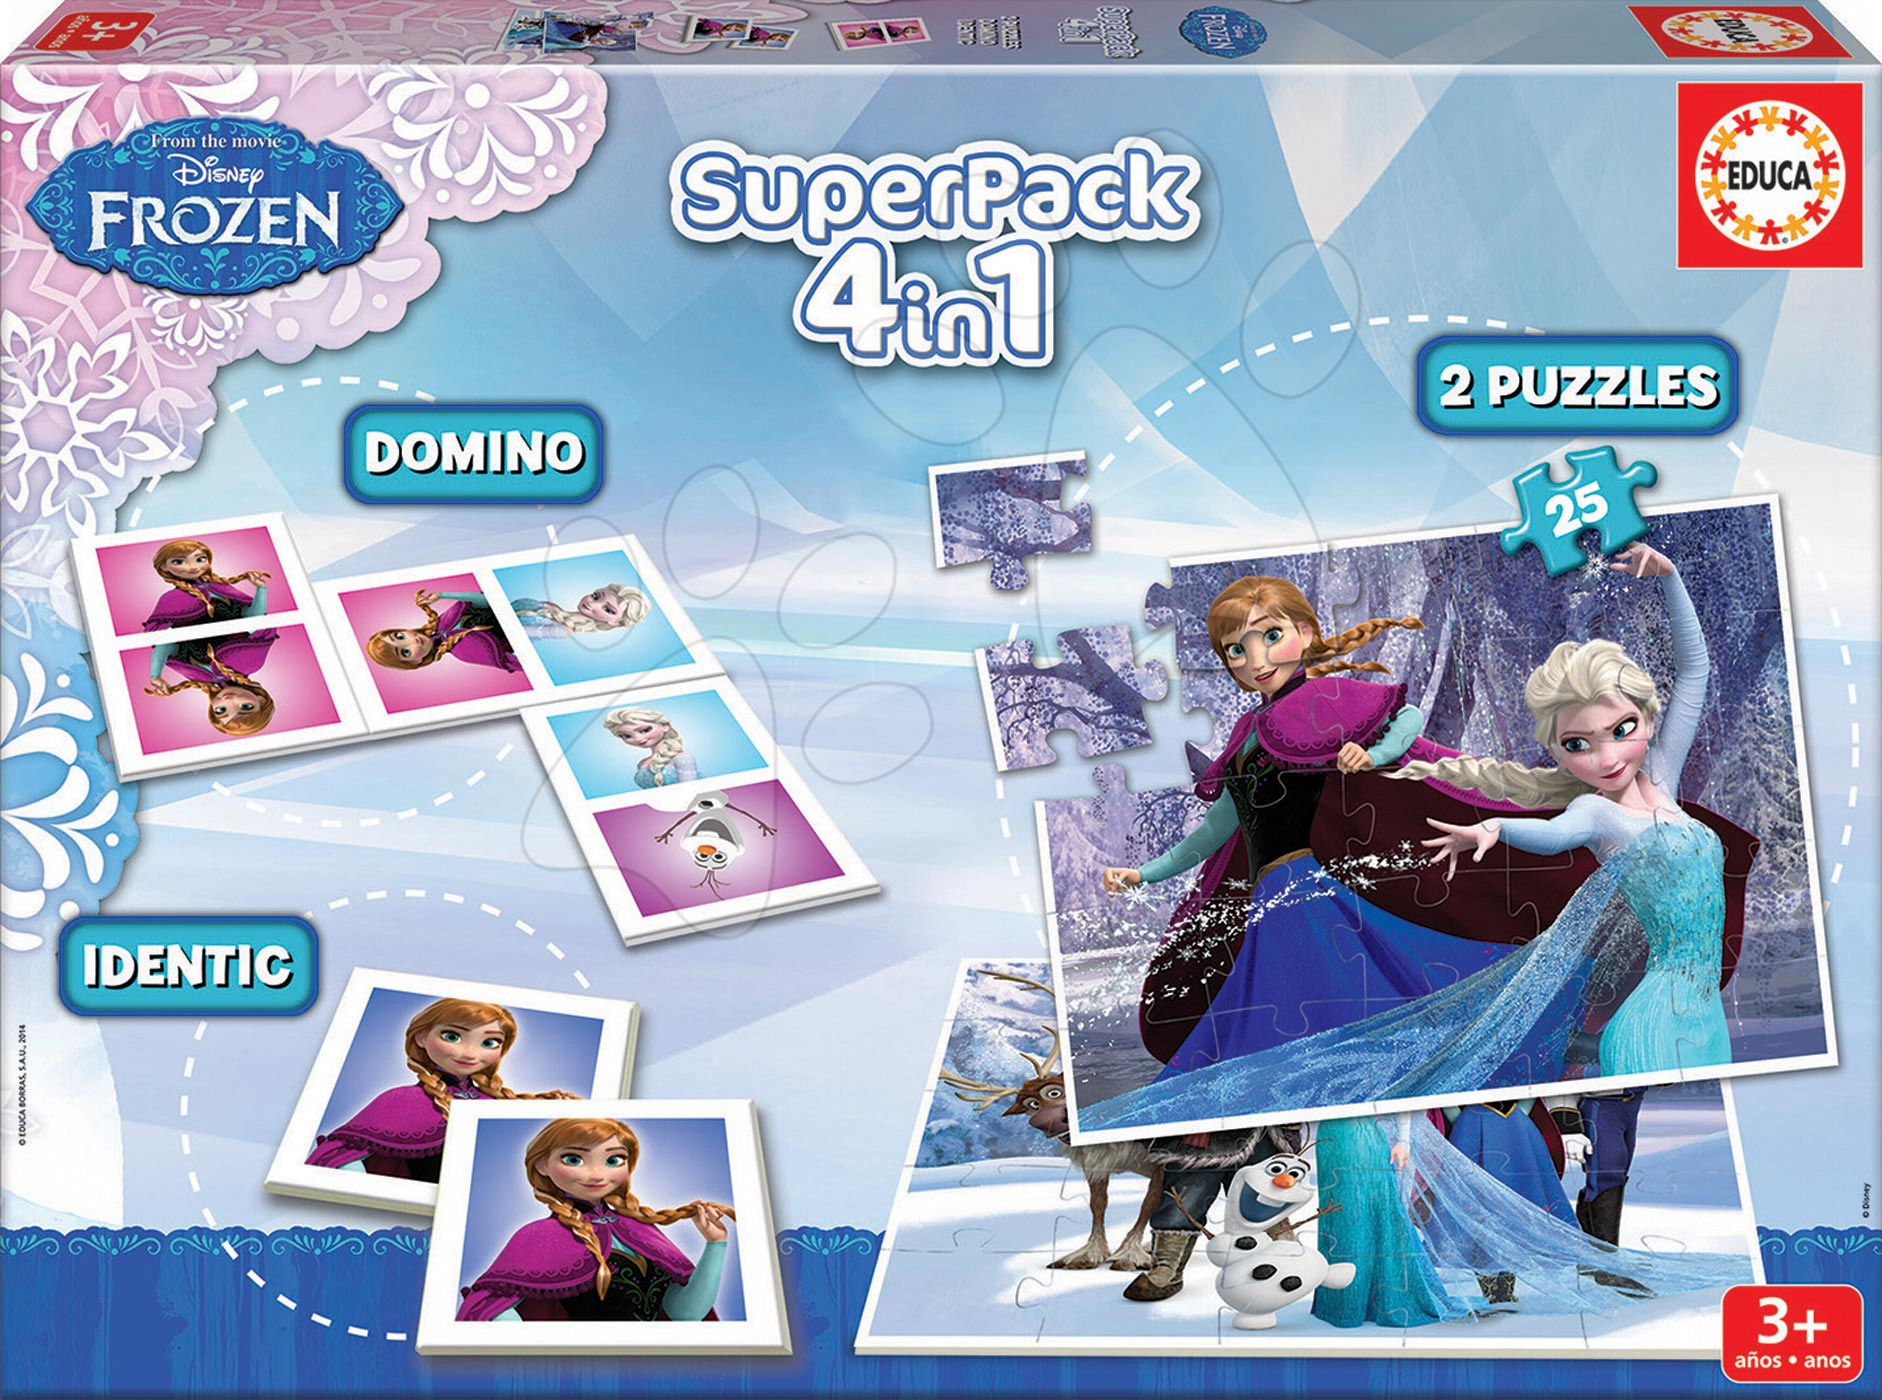 Puzzle SuperPack Frozen 4 v 1 Educa progresivní 2x puzzle, domino a pexeso